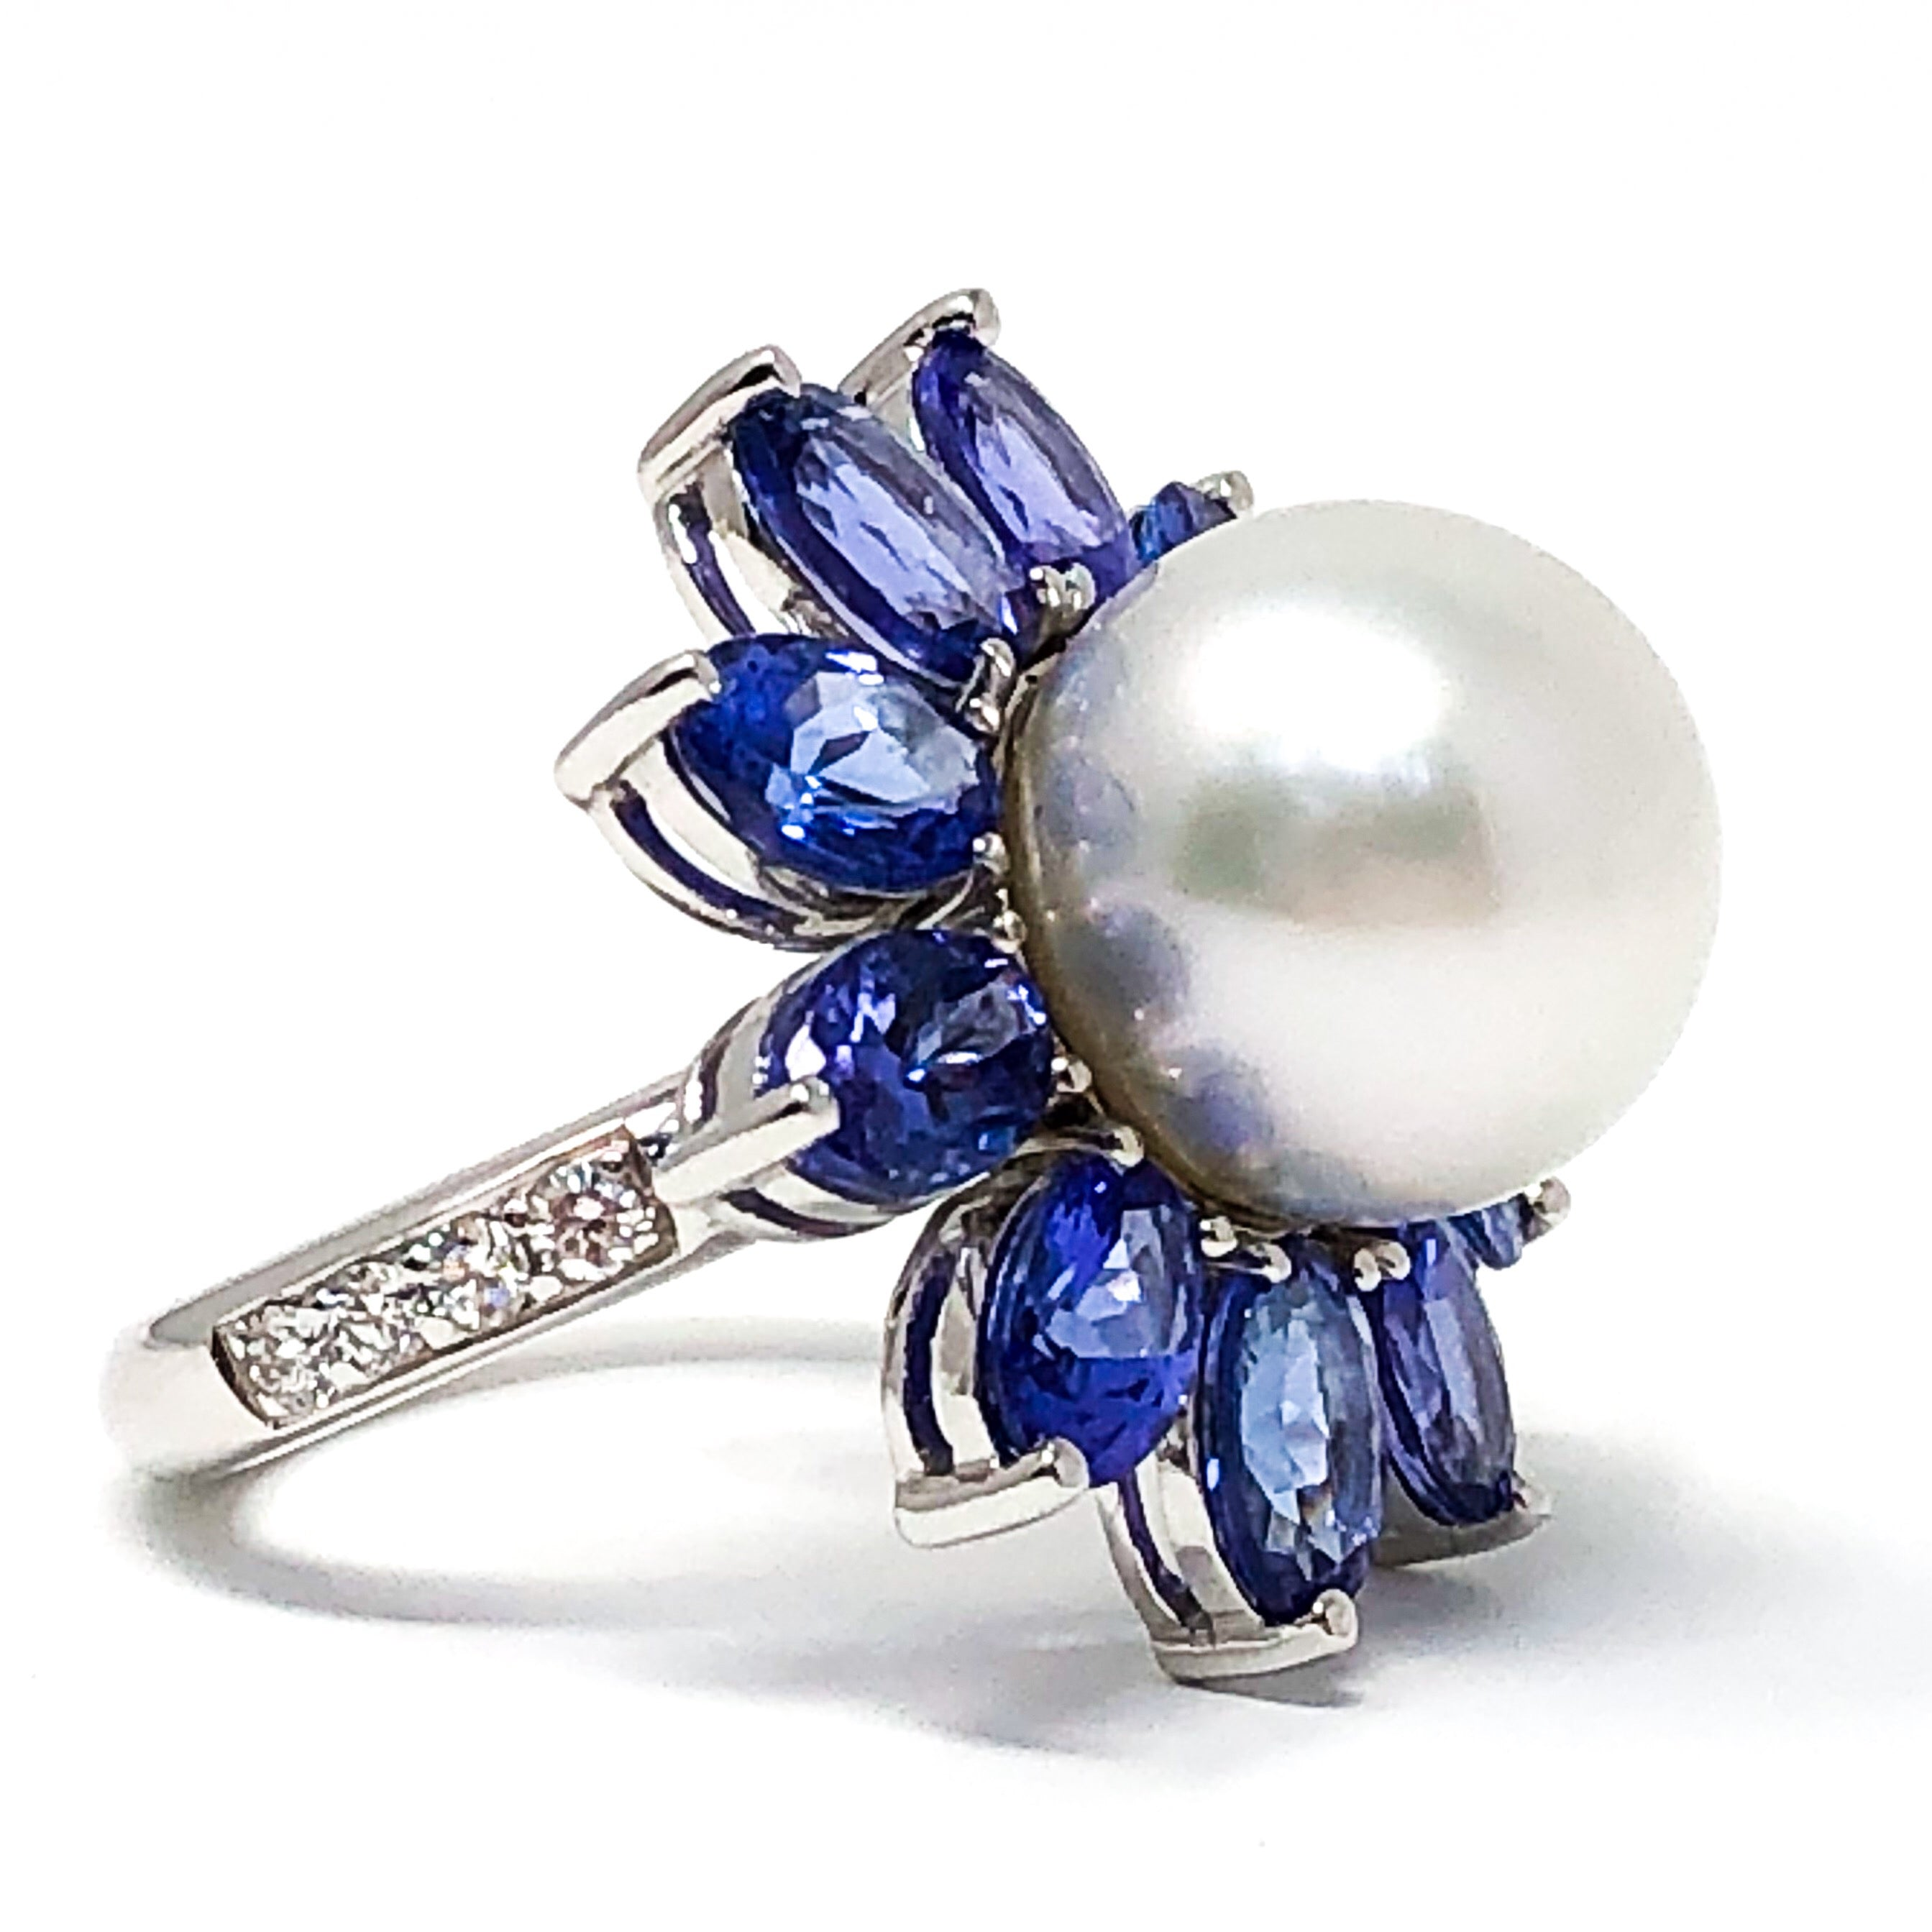 South Sea Pearl and Tanzanite Ring